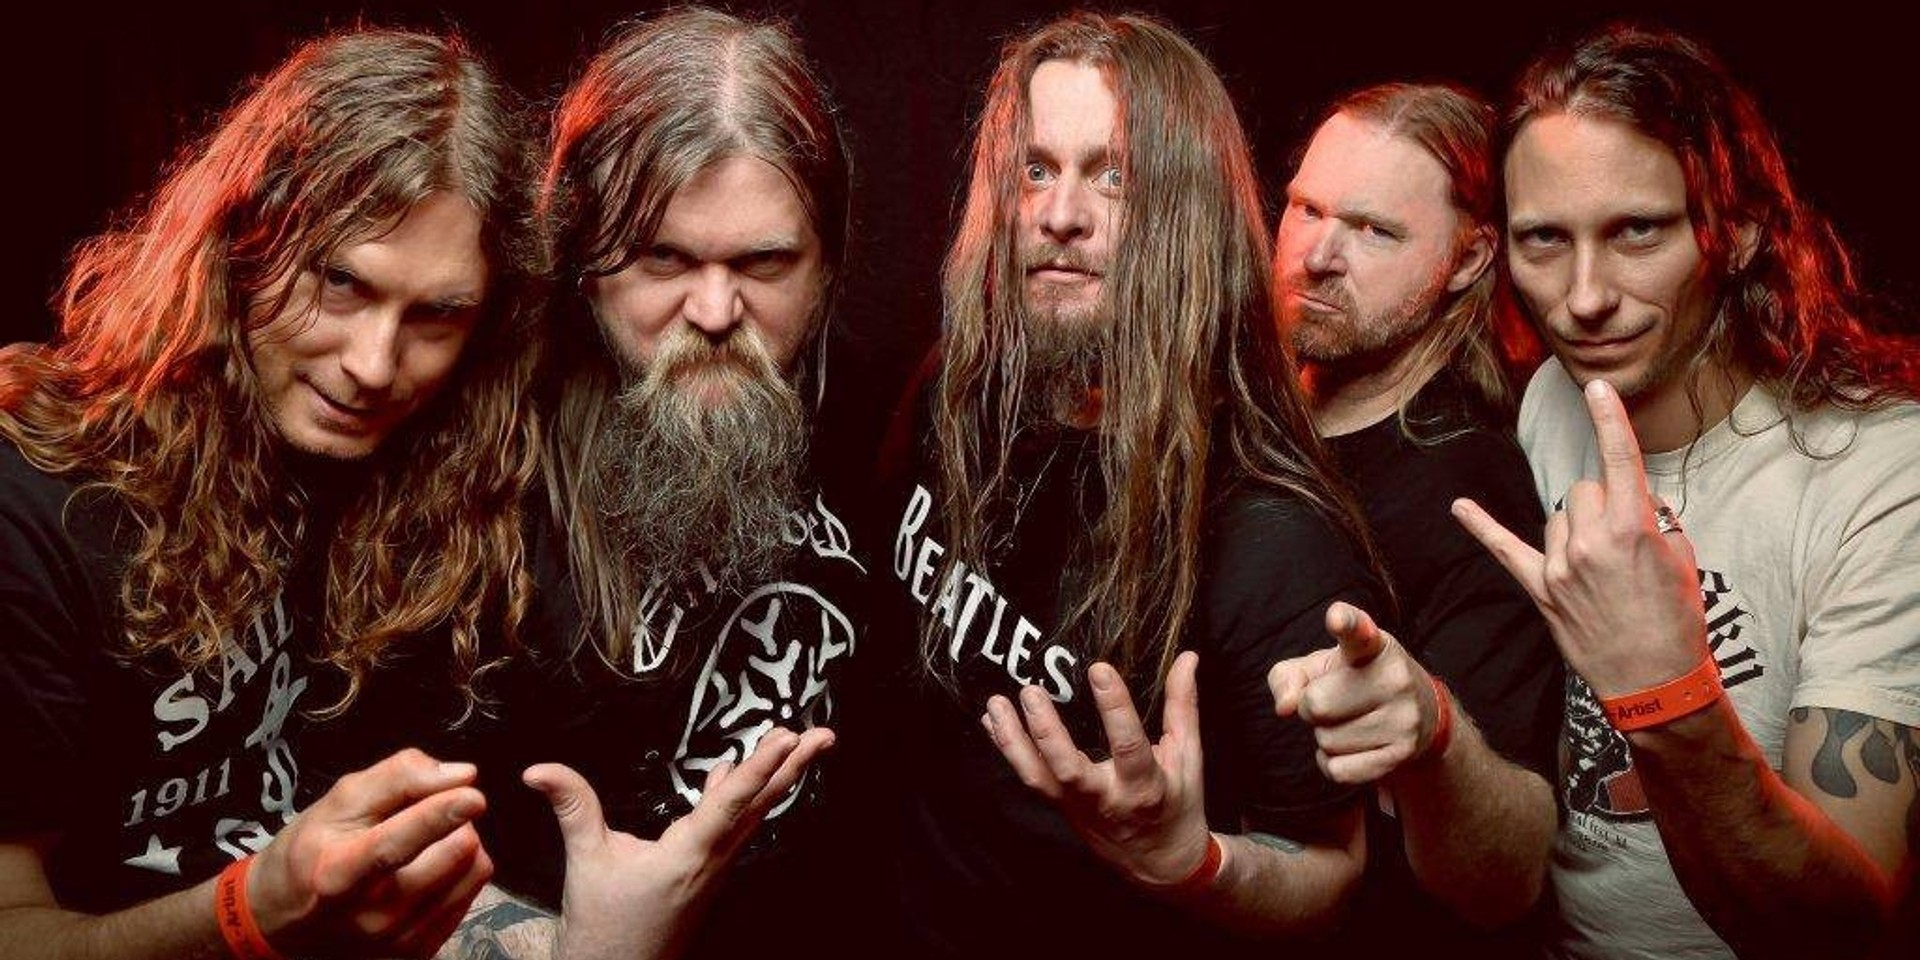 Norwegian extreme metal band Enslaved to perform in Singapore for the first time